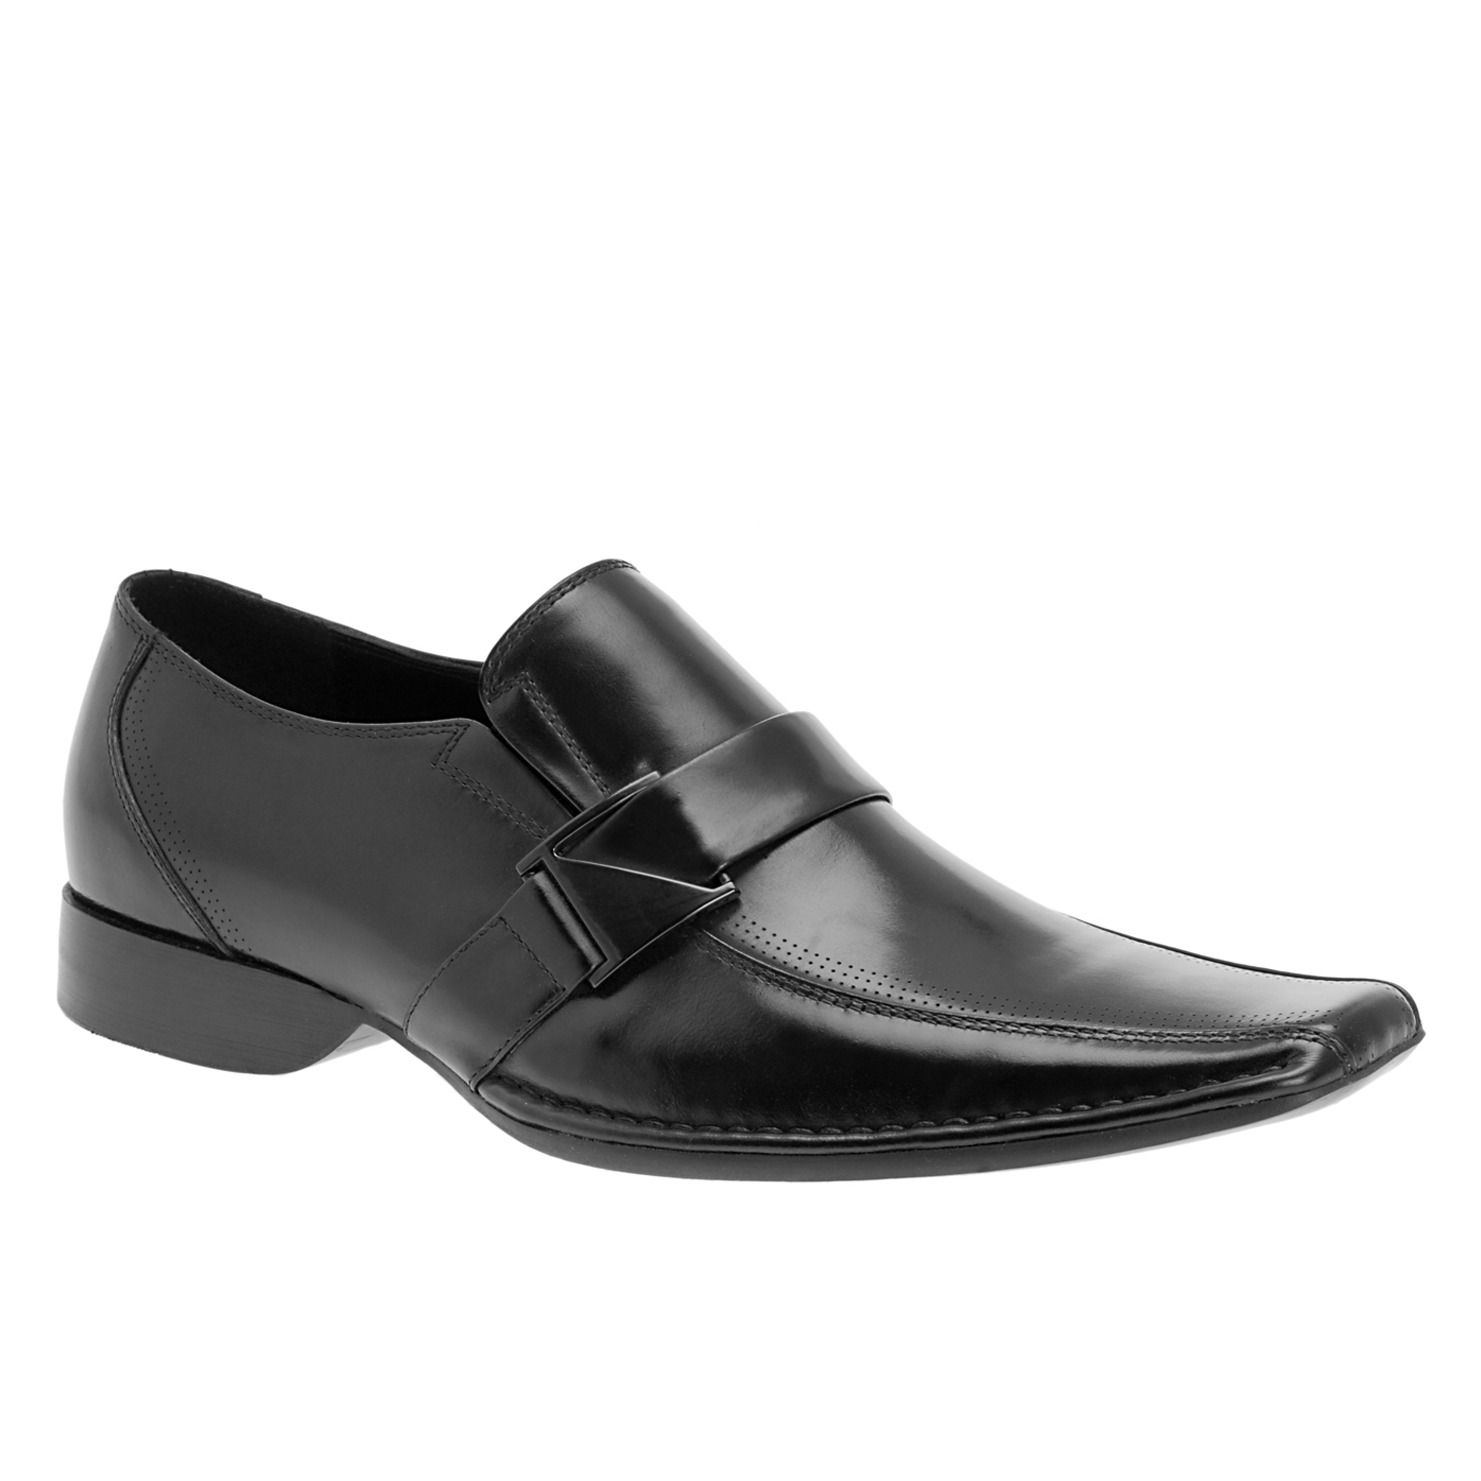 Dress loafers · TORRIE - men's dress loafers shoes ...